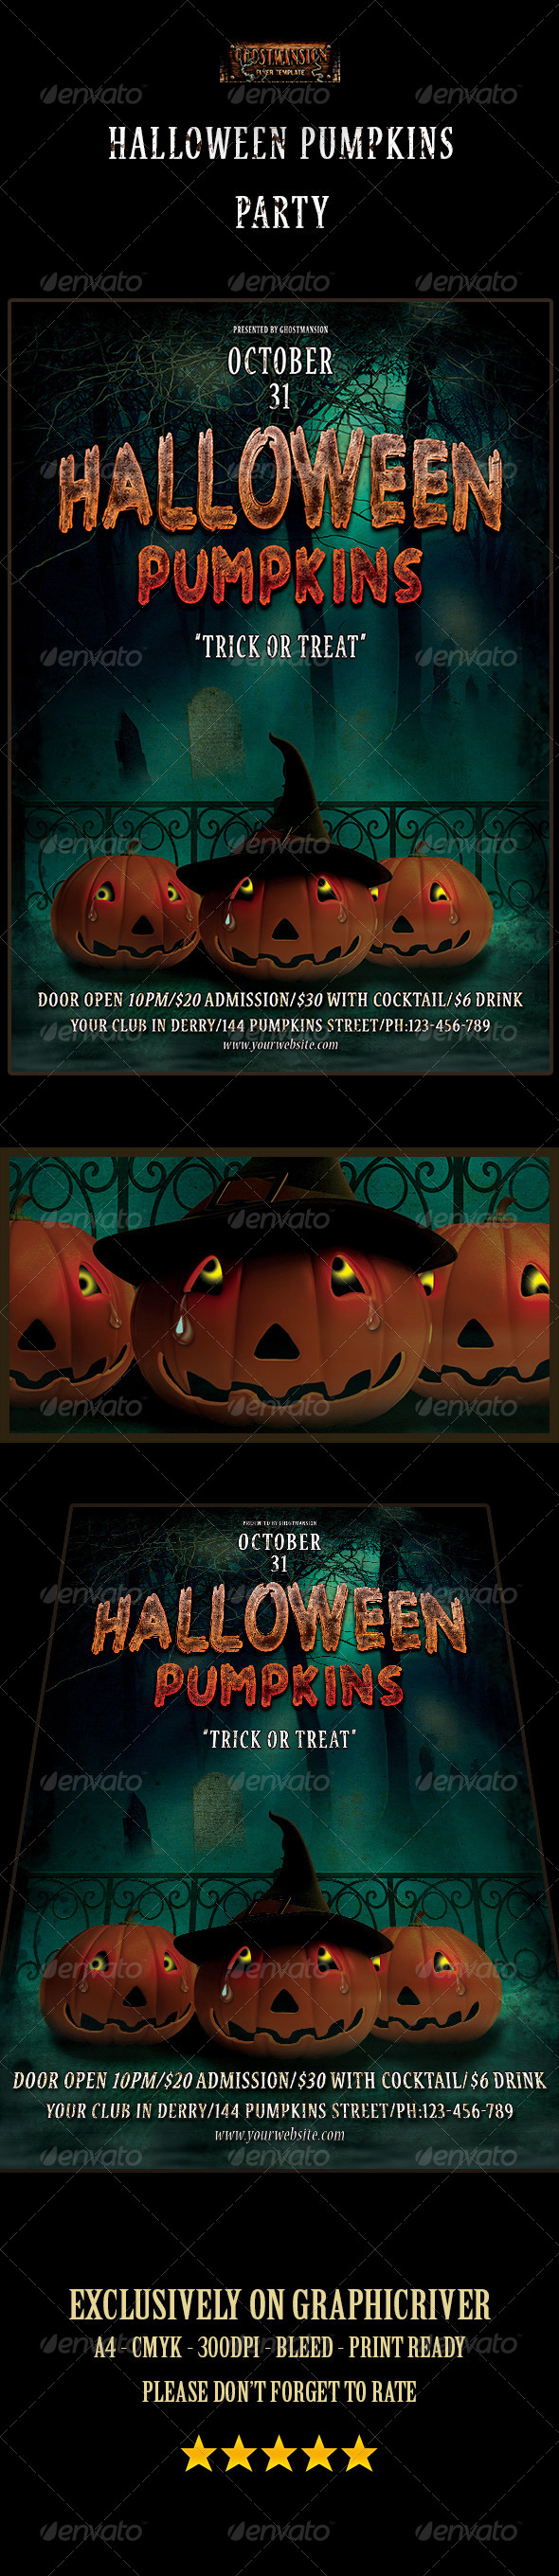 GraphicRiver Halloween Pumpkins Party 8654914